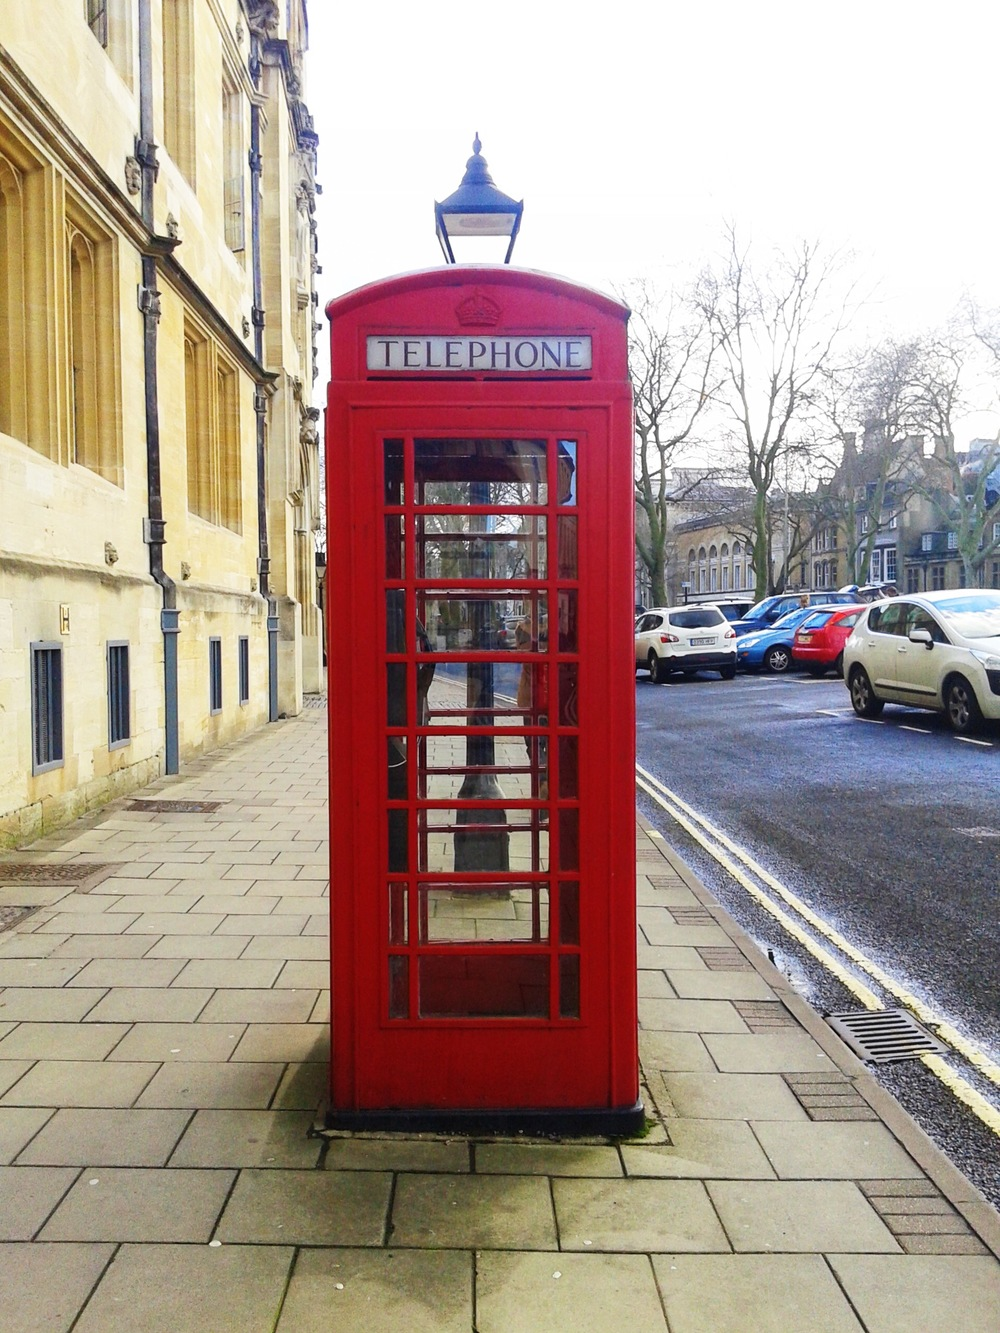 Because you haven't been to the UK if you don't take a picture or pose by a telephone booth! LOOLL!!